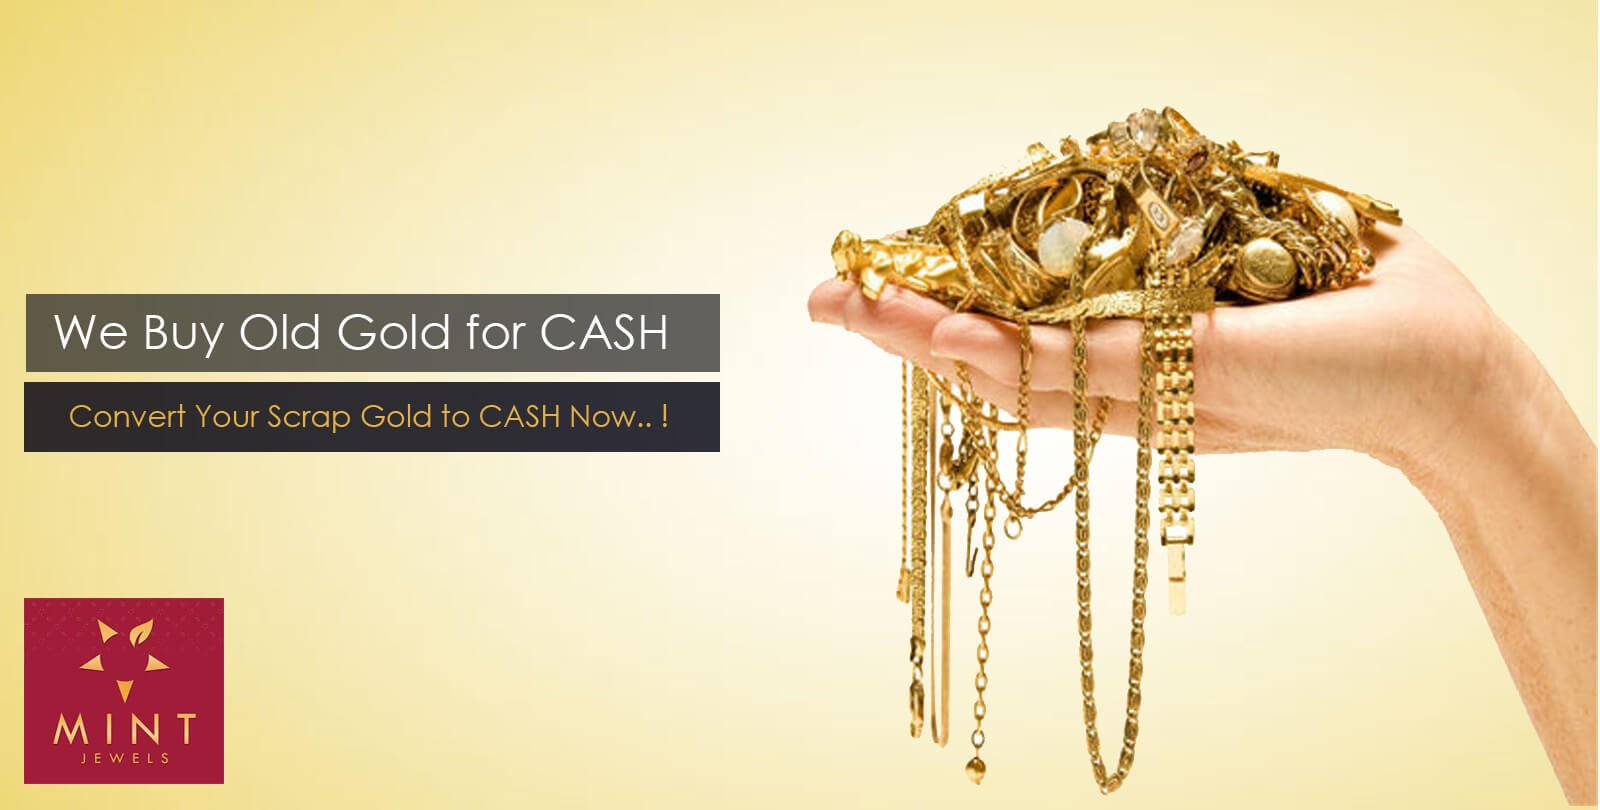 Buy,sell gold for cash in Dubai|sell old scrap gold UAE|Mint